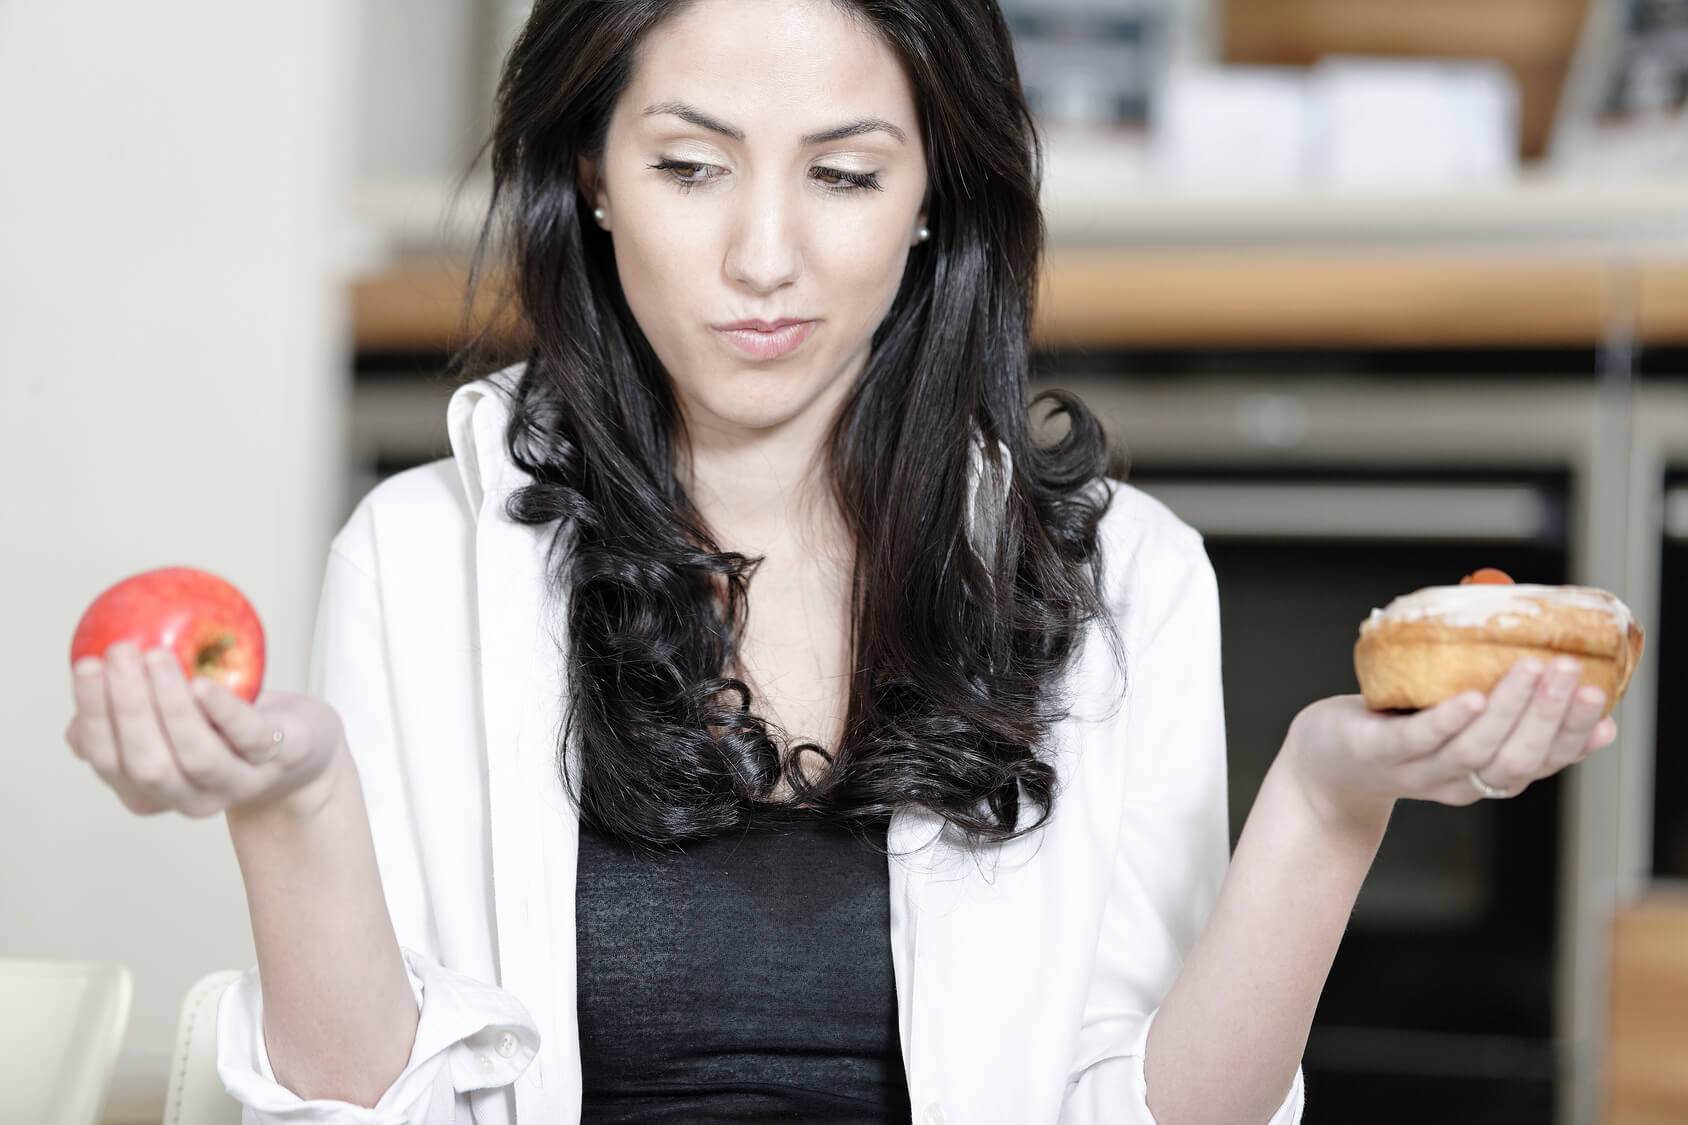 5 Reasons your diet isn't working